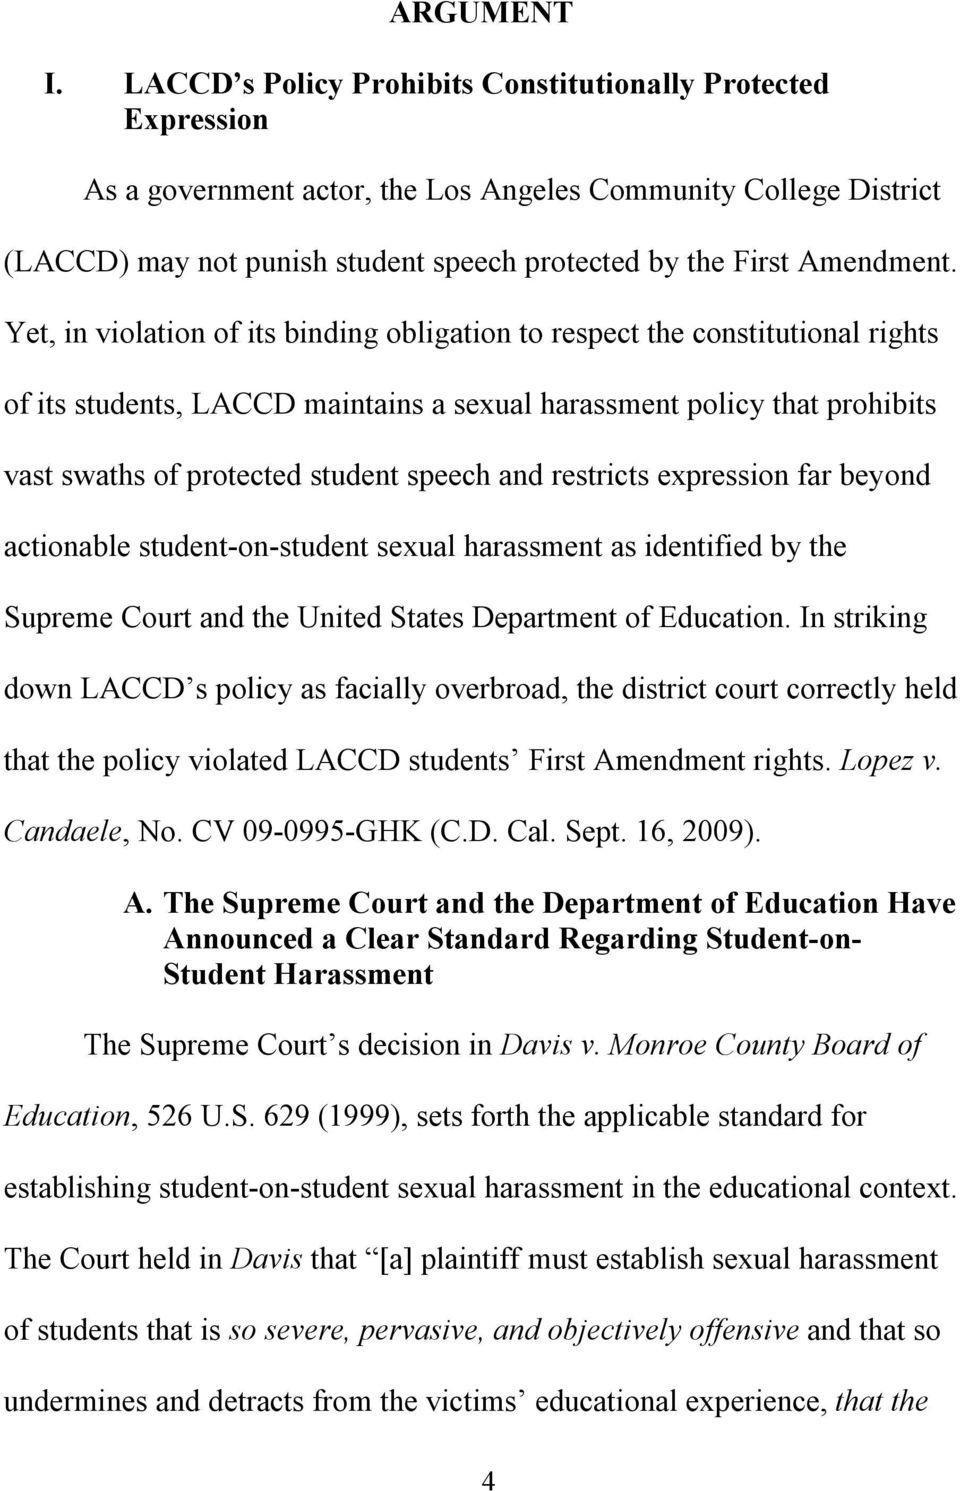 Yet, in violation of its binding obligation to respect the constitutional rights of its students, LACCD maintains a sexual harassment policy that prohibits vast swaths of protected student speech and